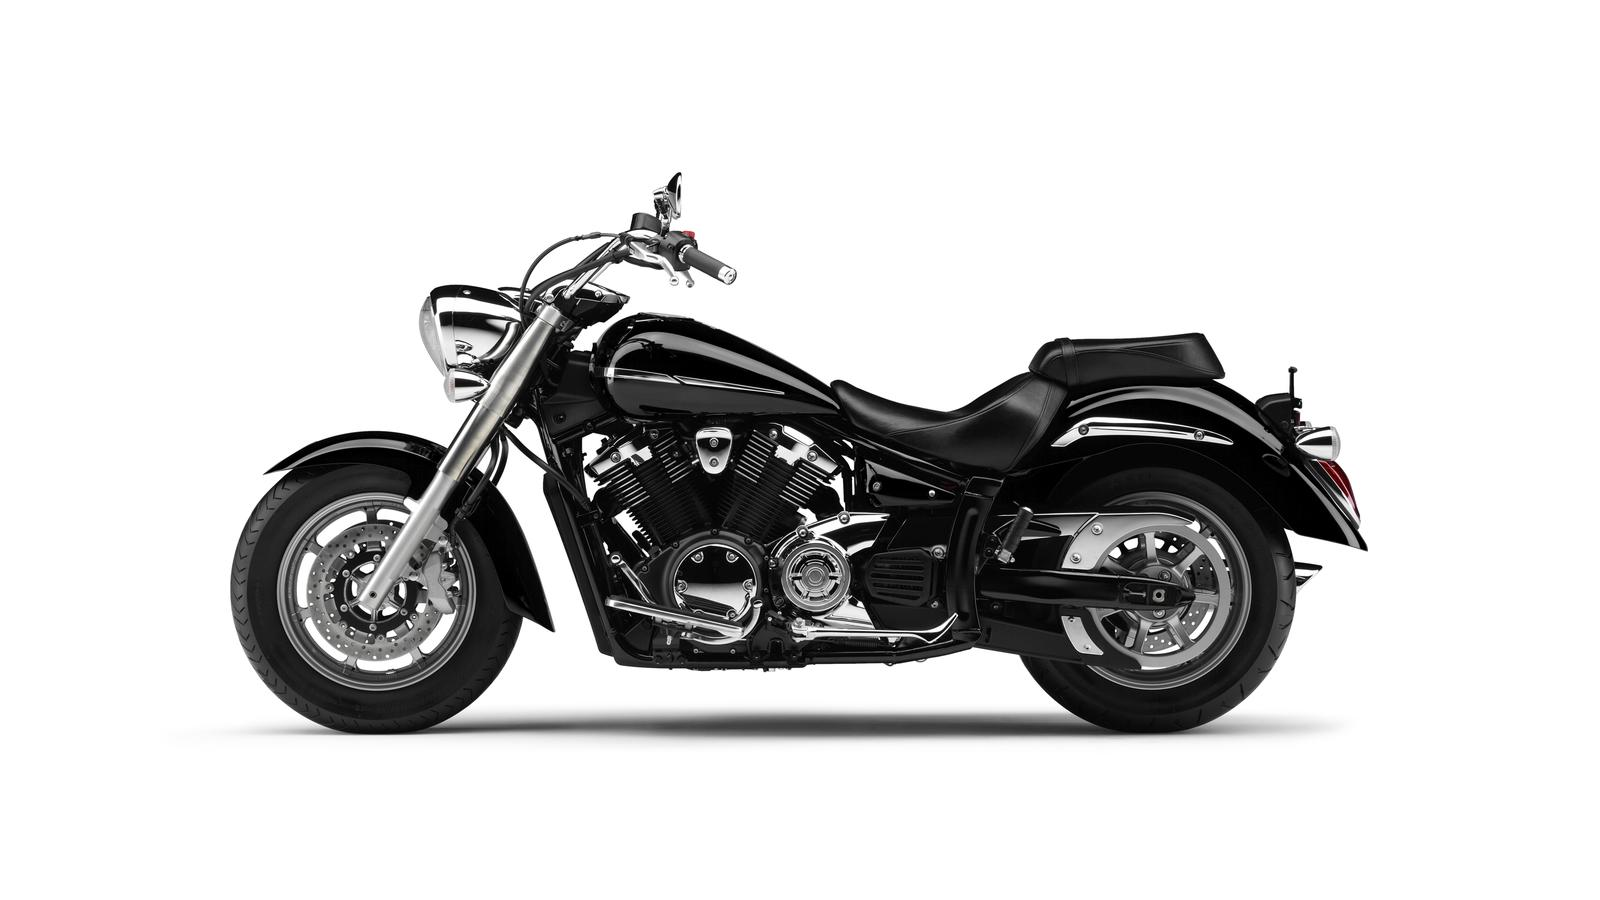 YAMAHA XVS 1300 A Midnight Star  2011 photo 3